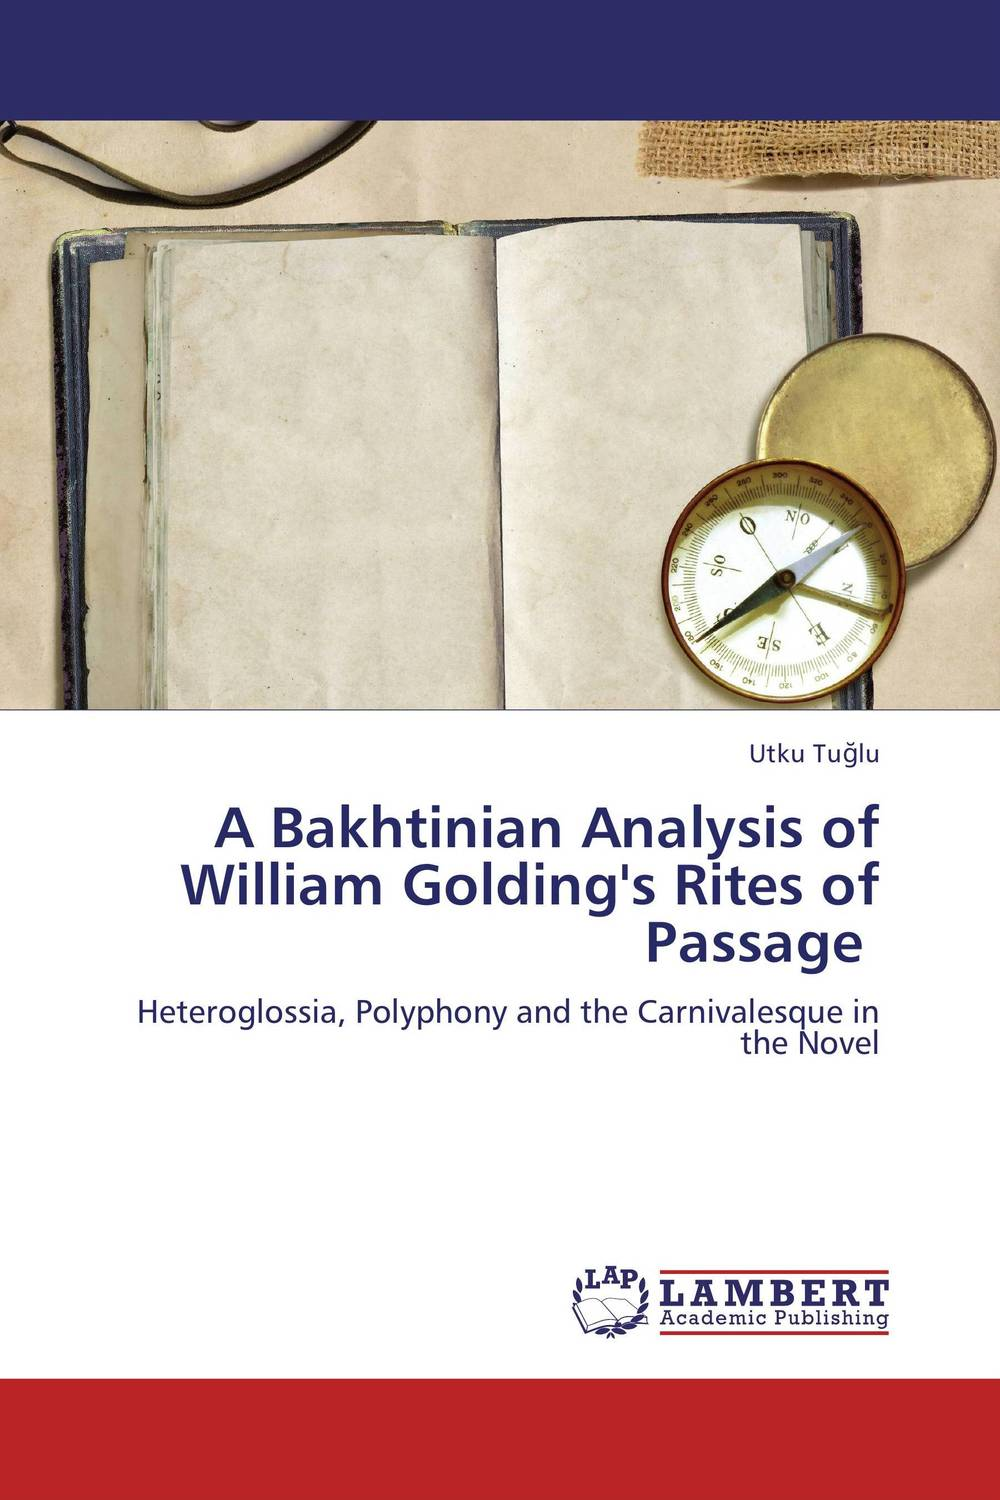 A Bakhtinian Analysis of William Golding's Rites of Passage william butler yeats the collected works in verse and prose of william butler yeats volume 6 of 8 ideas of good and evil